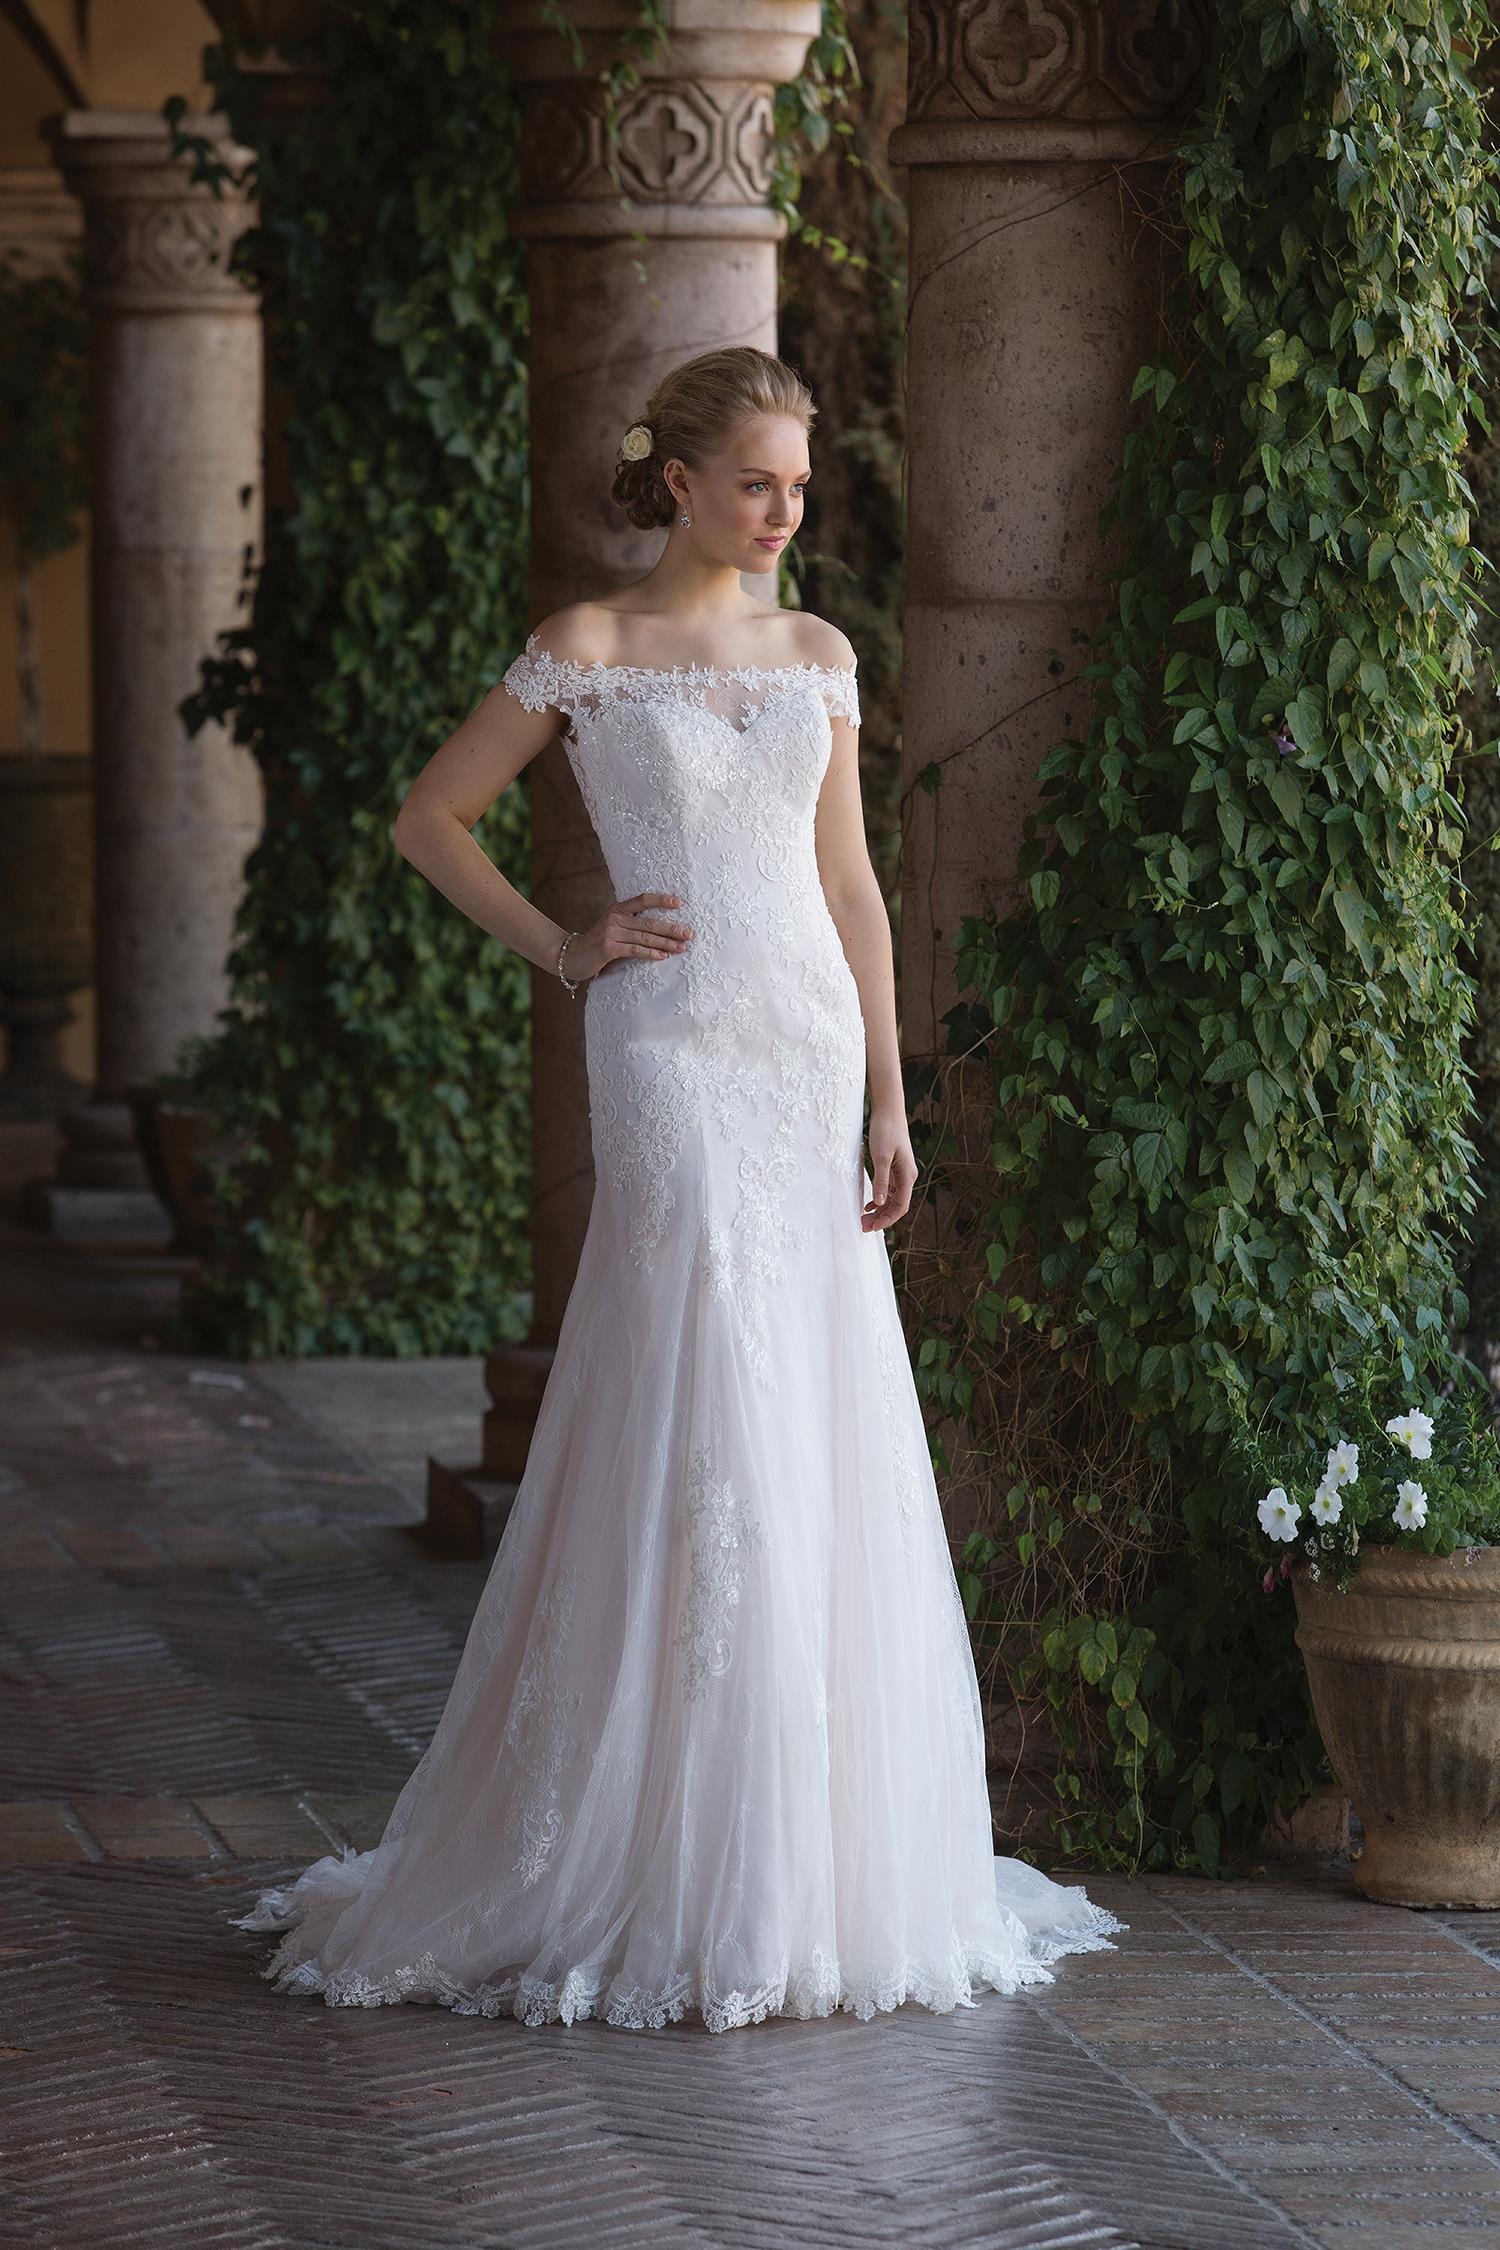 c5bd2f4dc Style No: - 4022 Chantilly lace feels extra romantic in this off the  shoulder fit and flare wedding dress ...